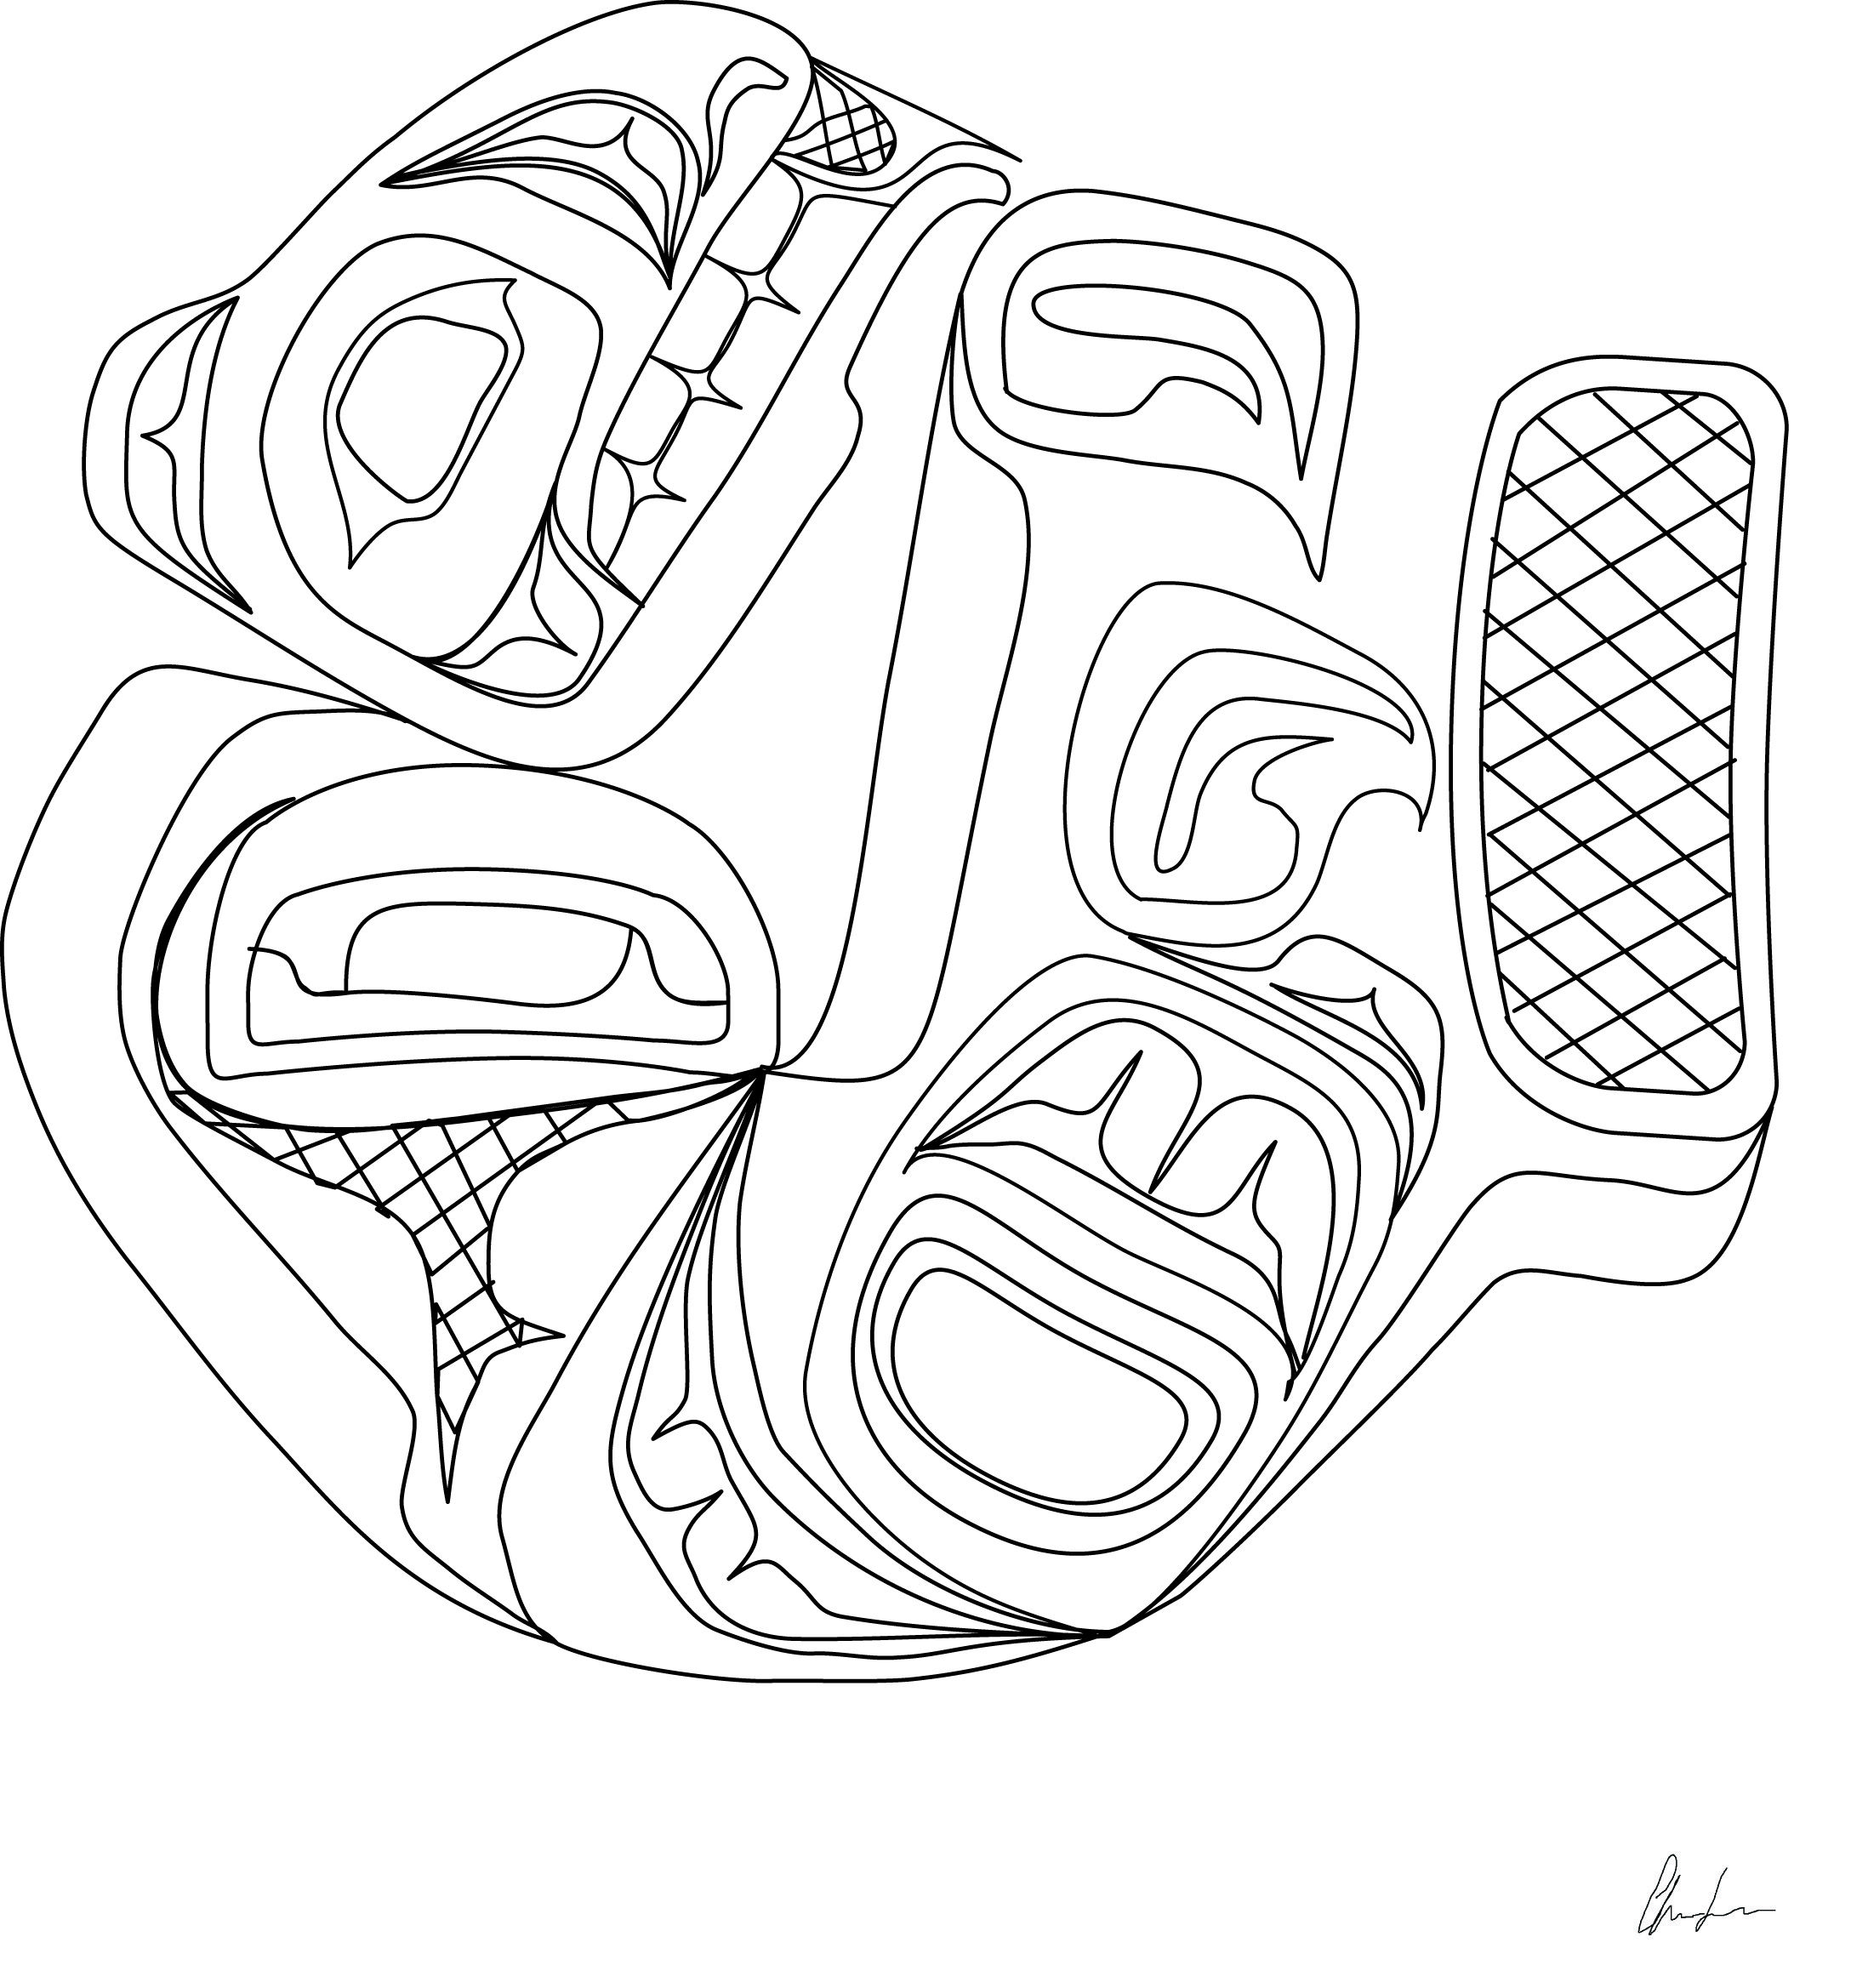 Sleeping Beaver Coloring Book Design Northwest Coast First Nations Style By Charrine Naziel Lace Designs Coloring Books Native American Art Coloring Books